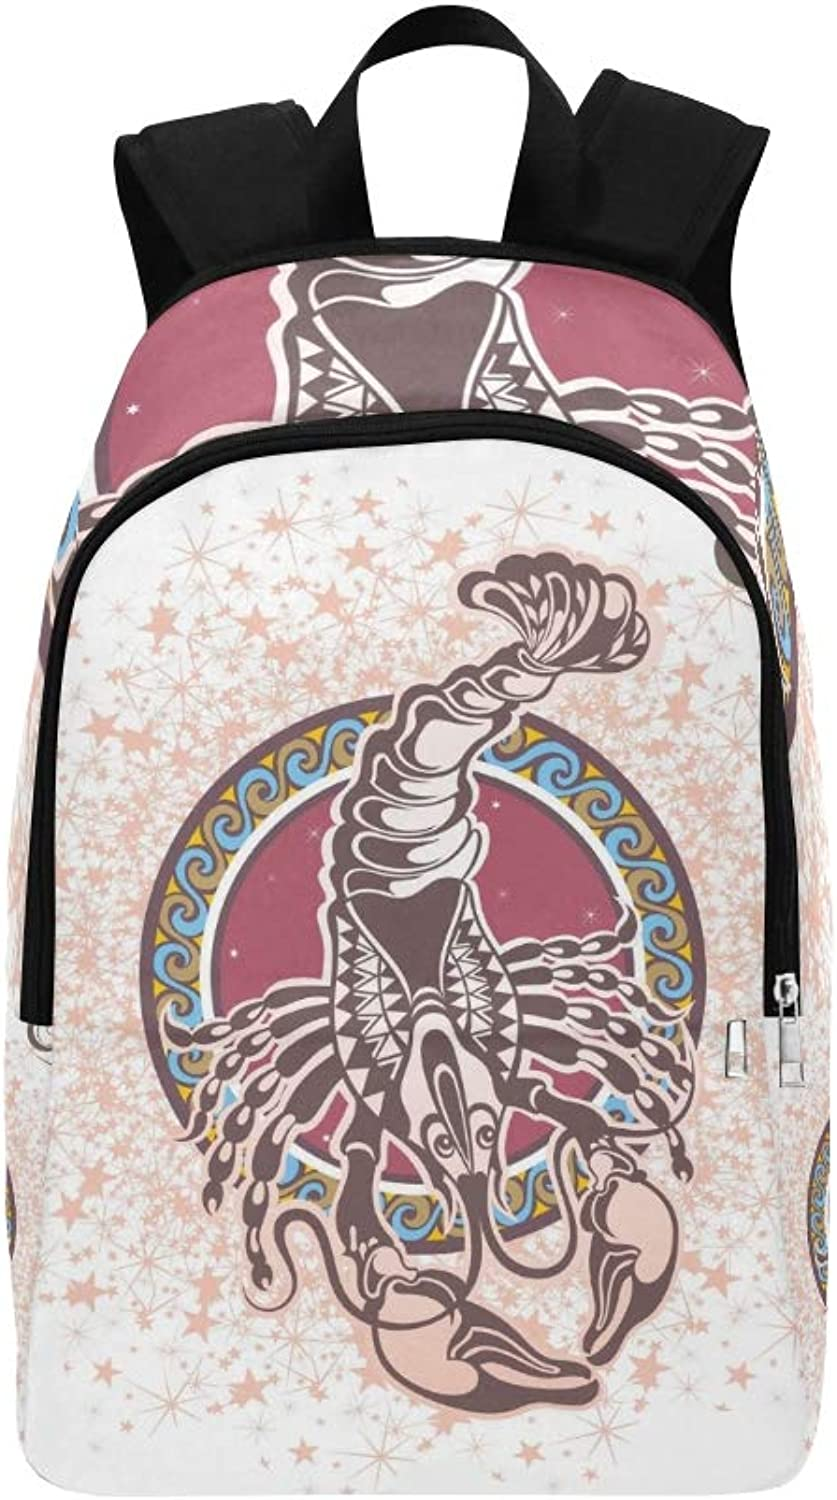 Cancer Zodiac Sign Casual Daypack Travel Bag College School Backpack for Mens and Women